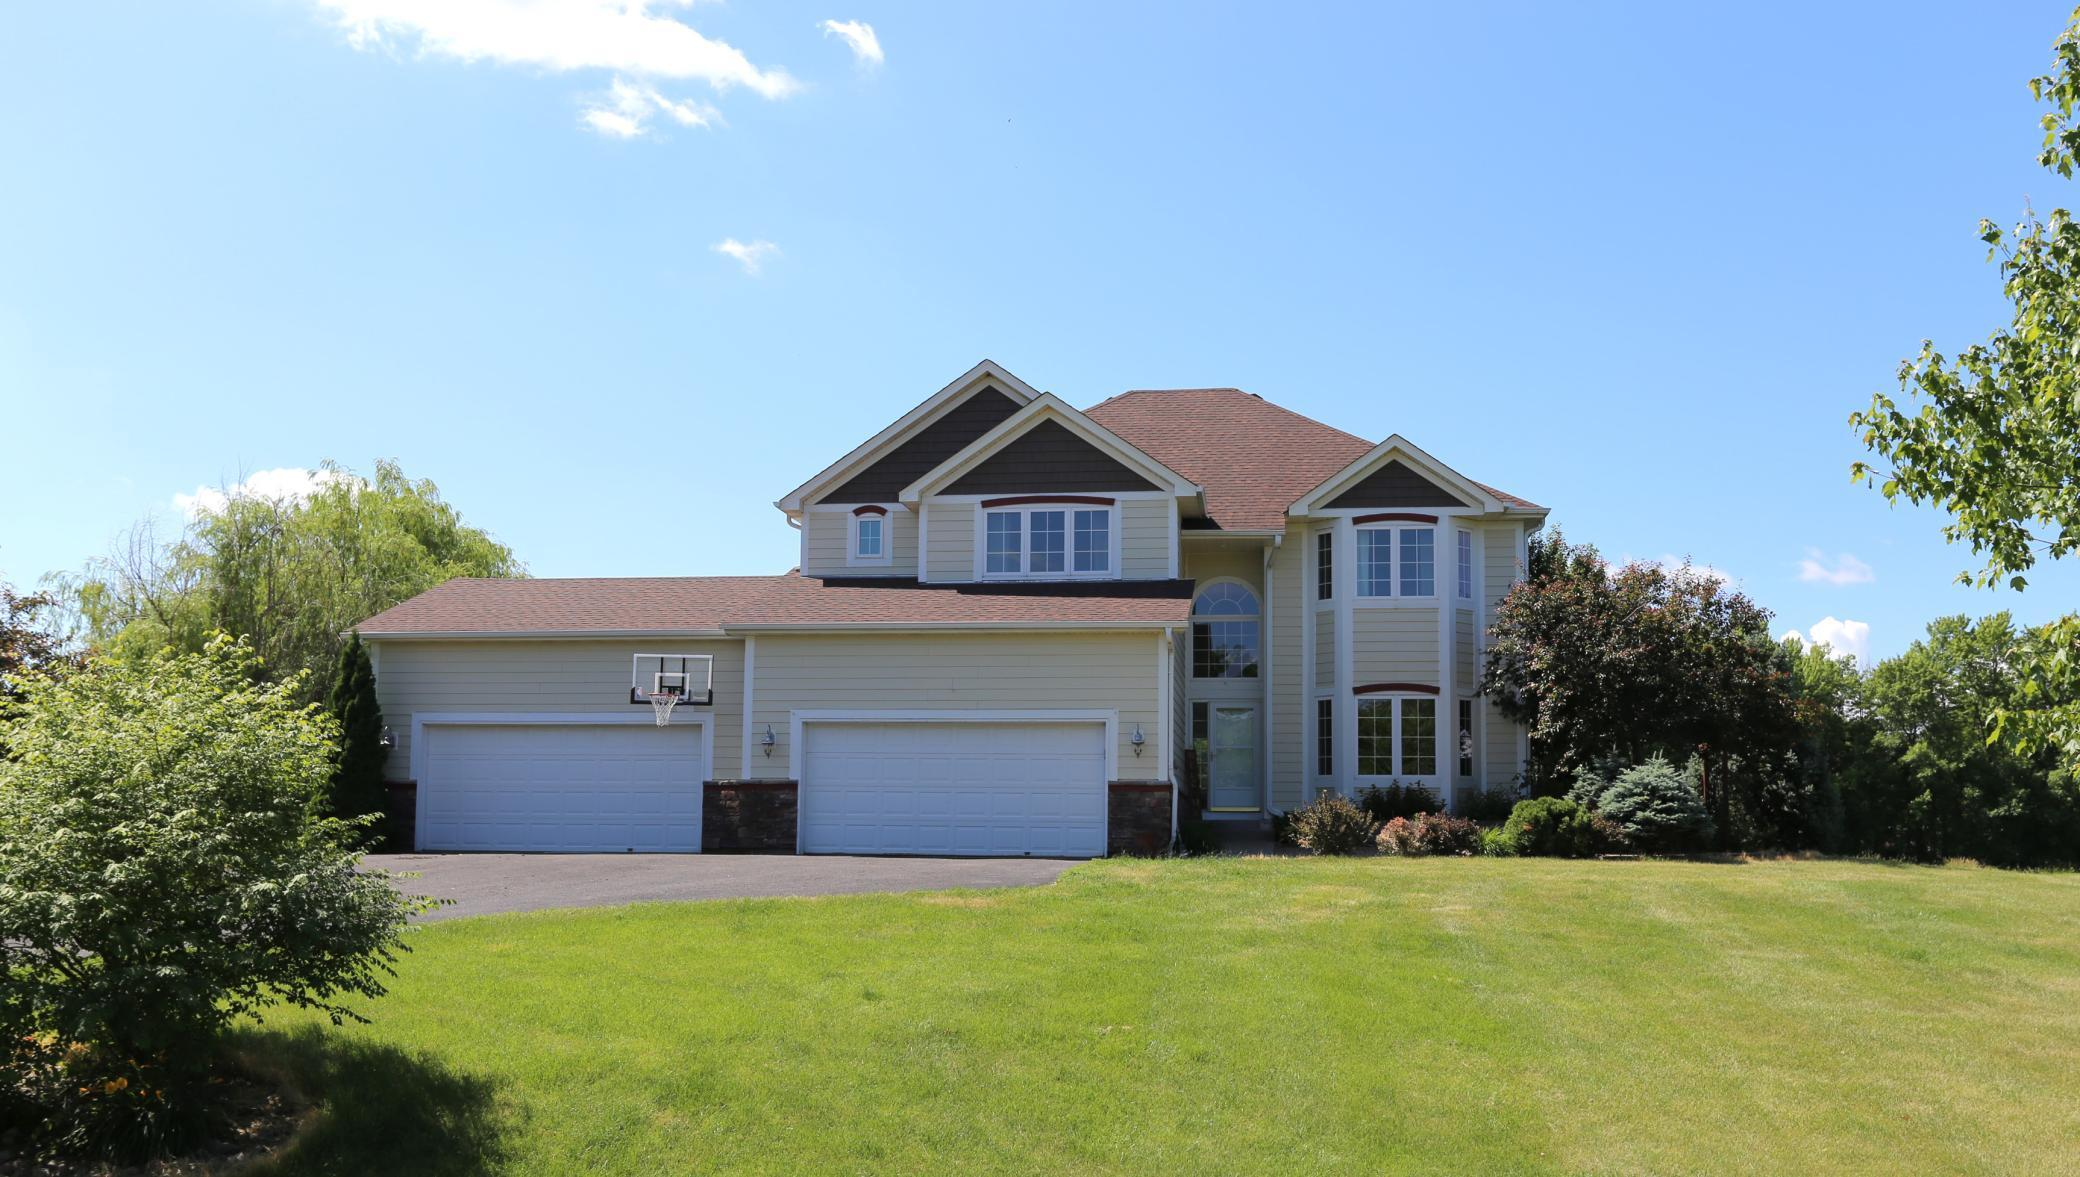 5110 Country Circle Property Photo - Greenfield, MN real estate listing